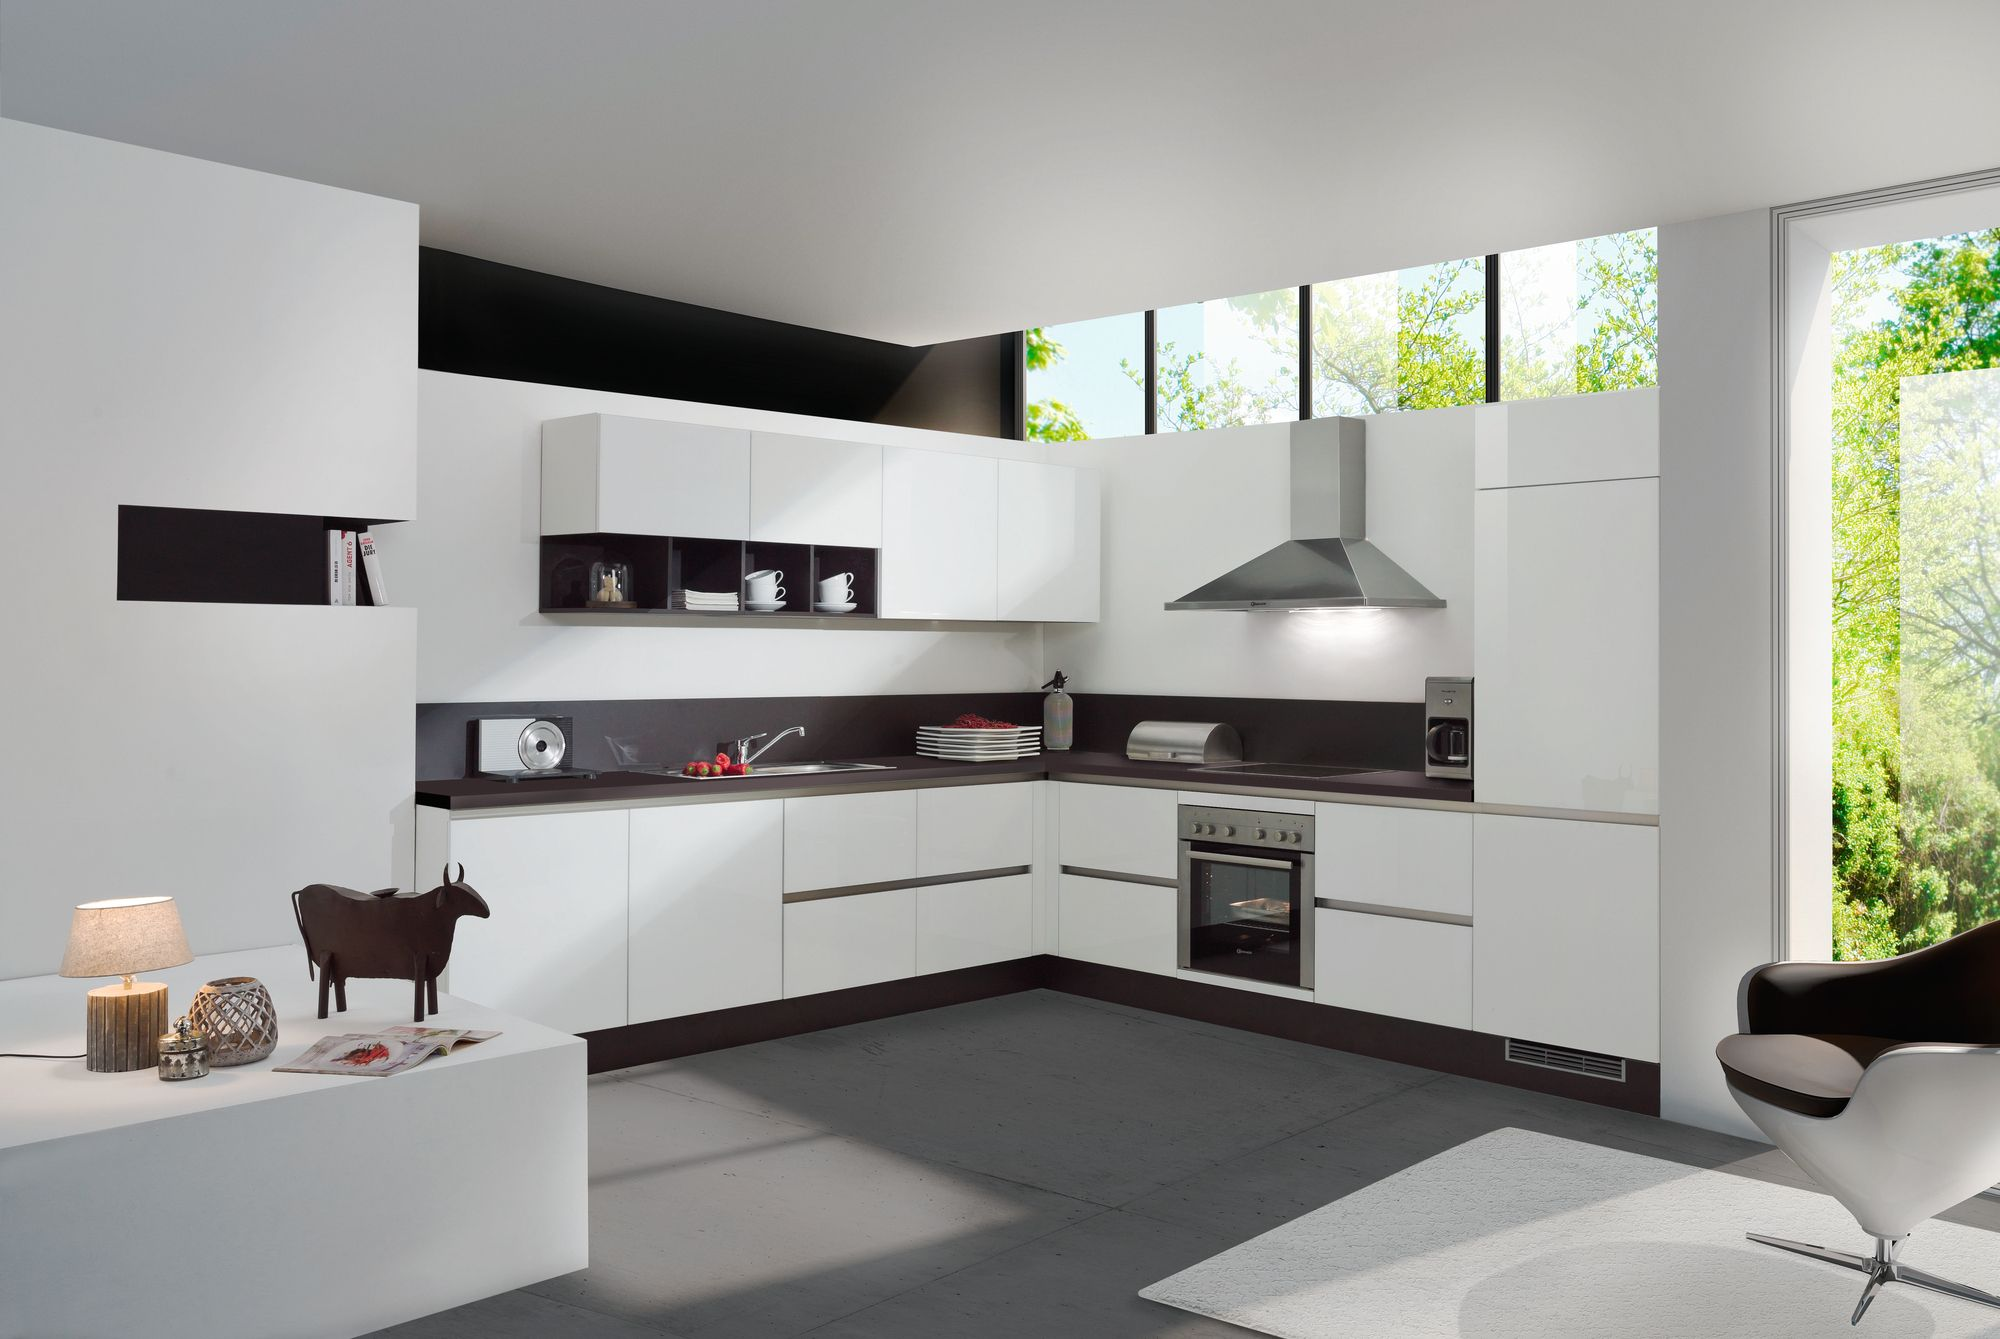 Cuisine aviva moderne design pur for Decoration cuisine moderne 2014